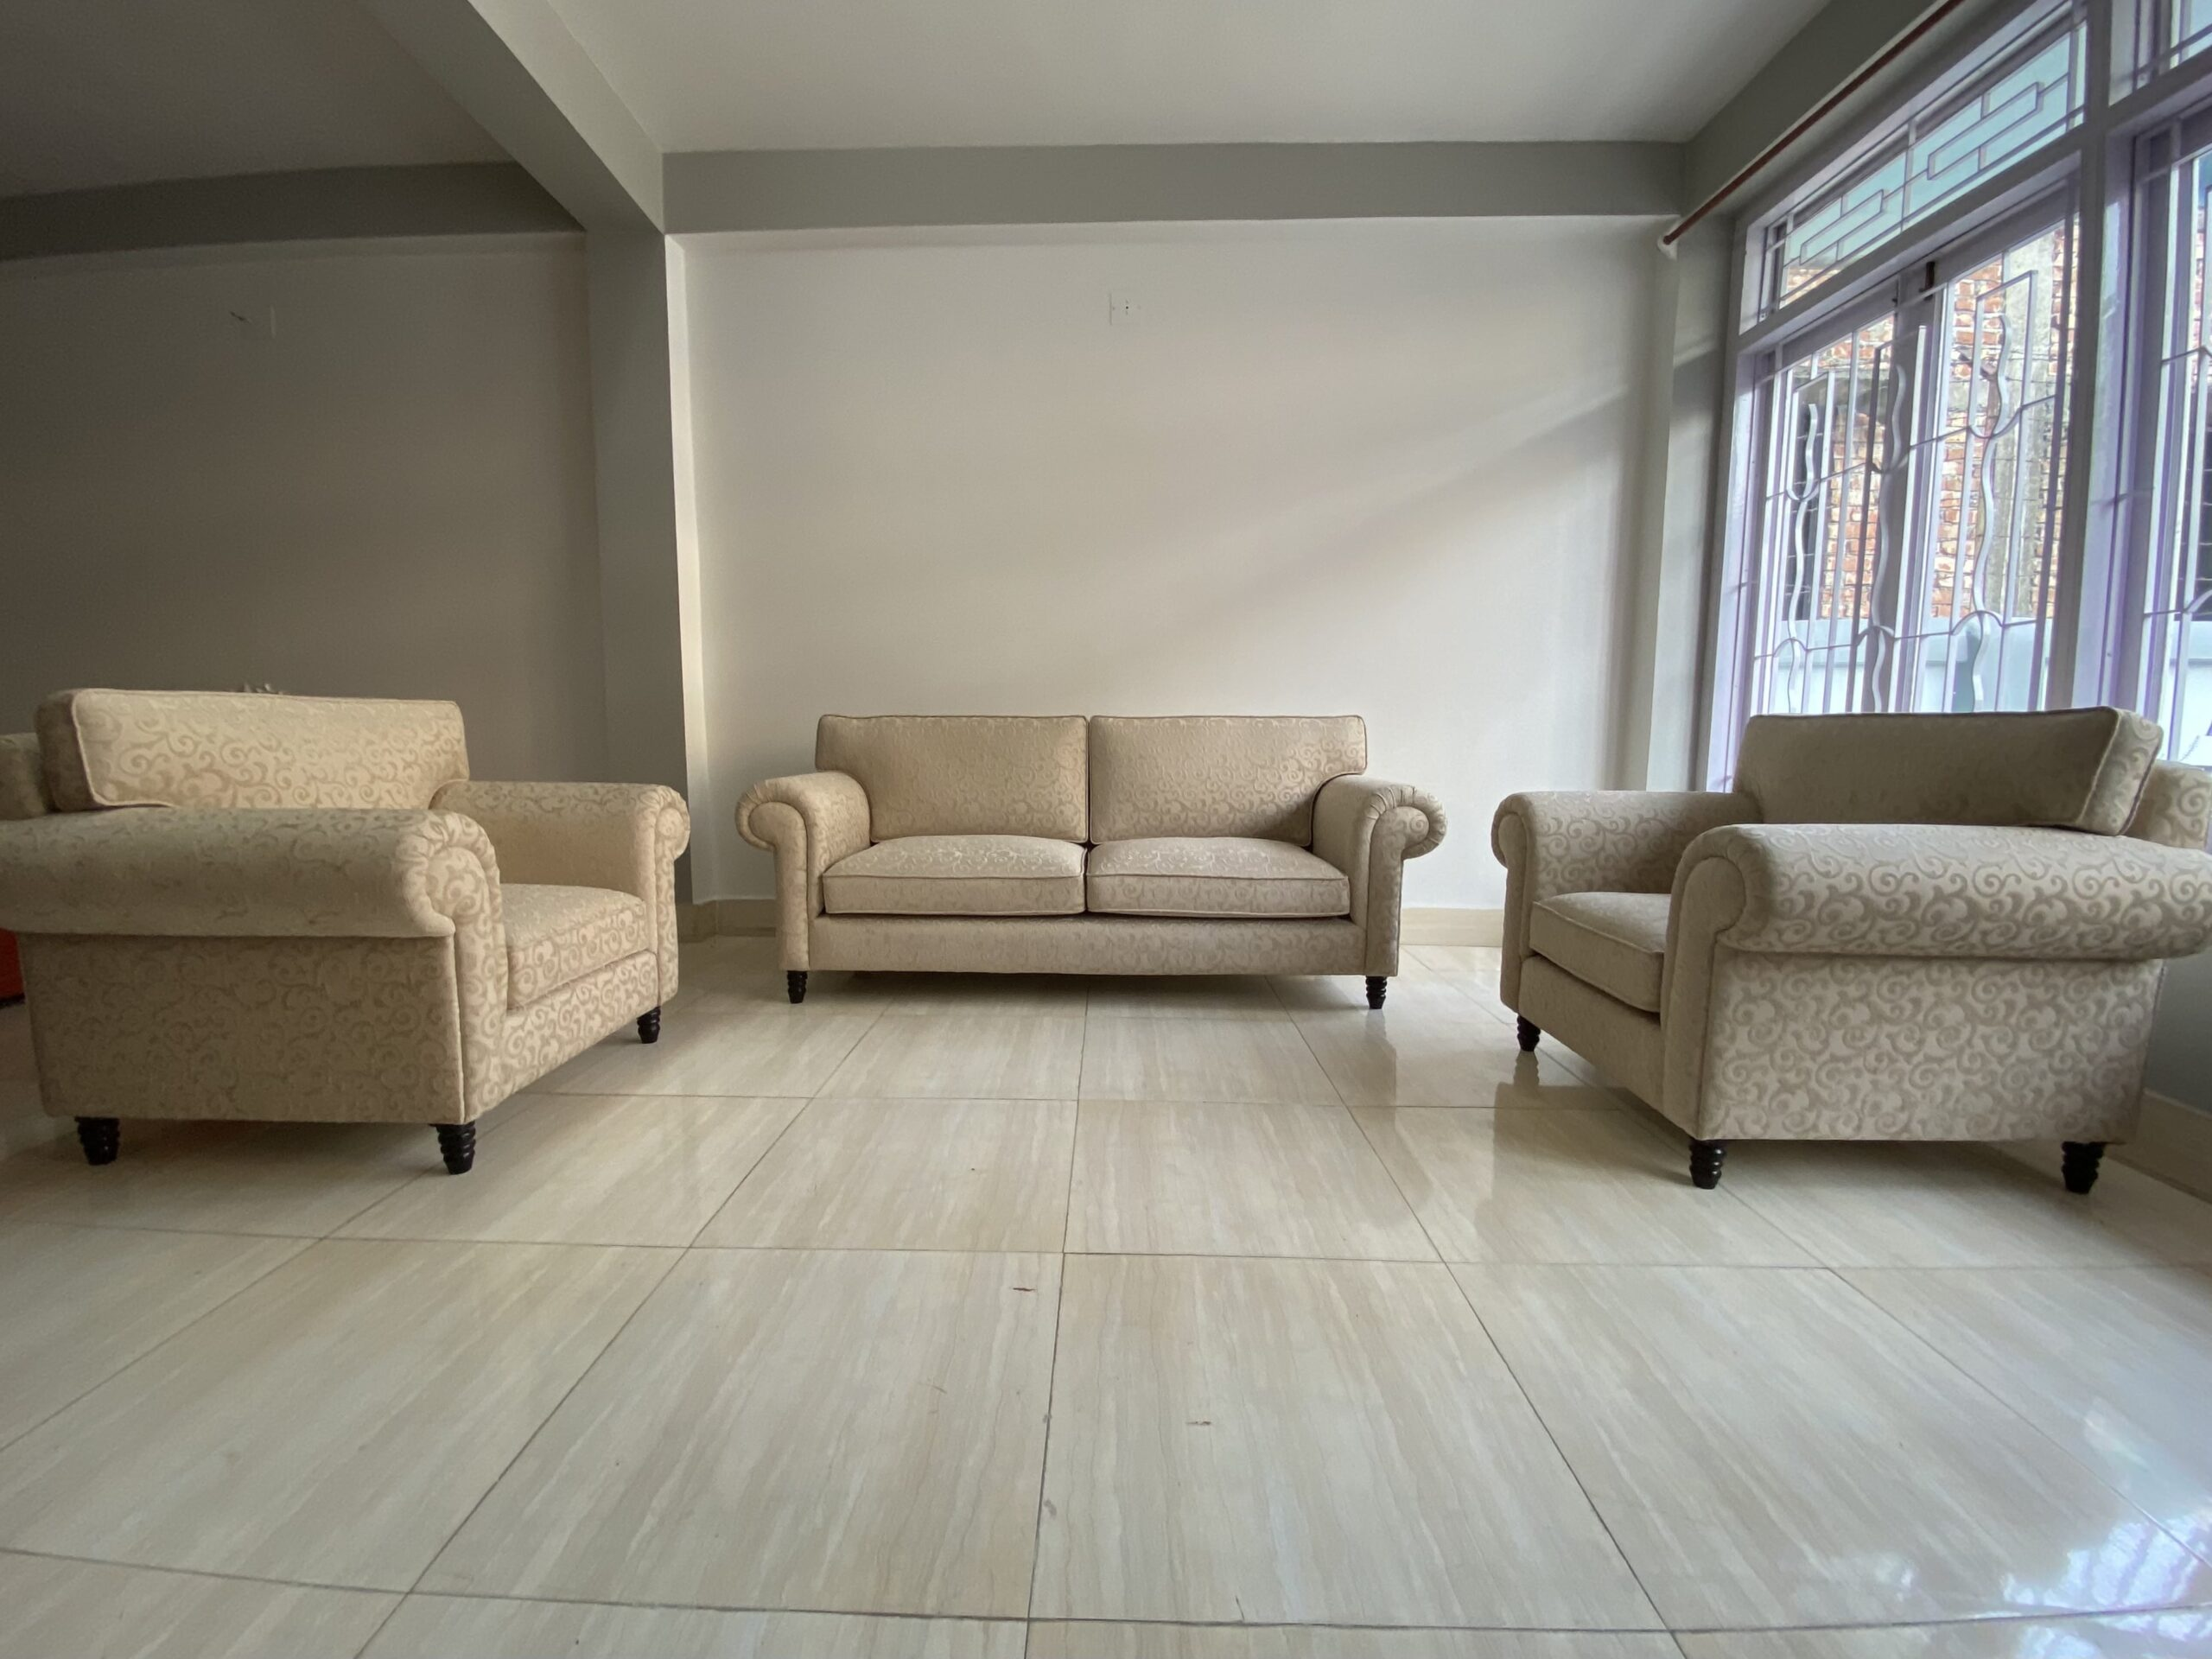 5 seater sofa sold by Imperial Furnishing Furniture Showroom in Thimphu